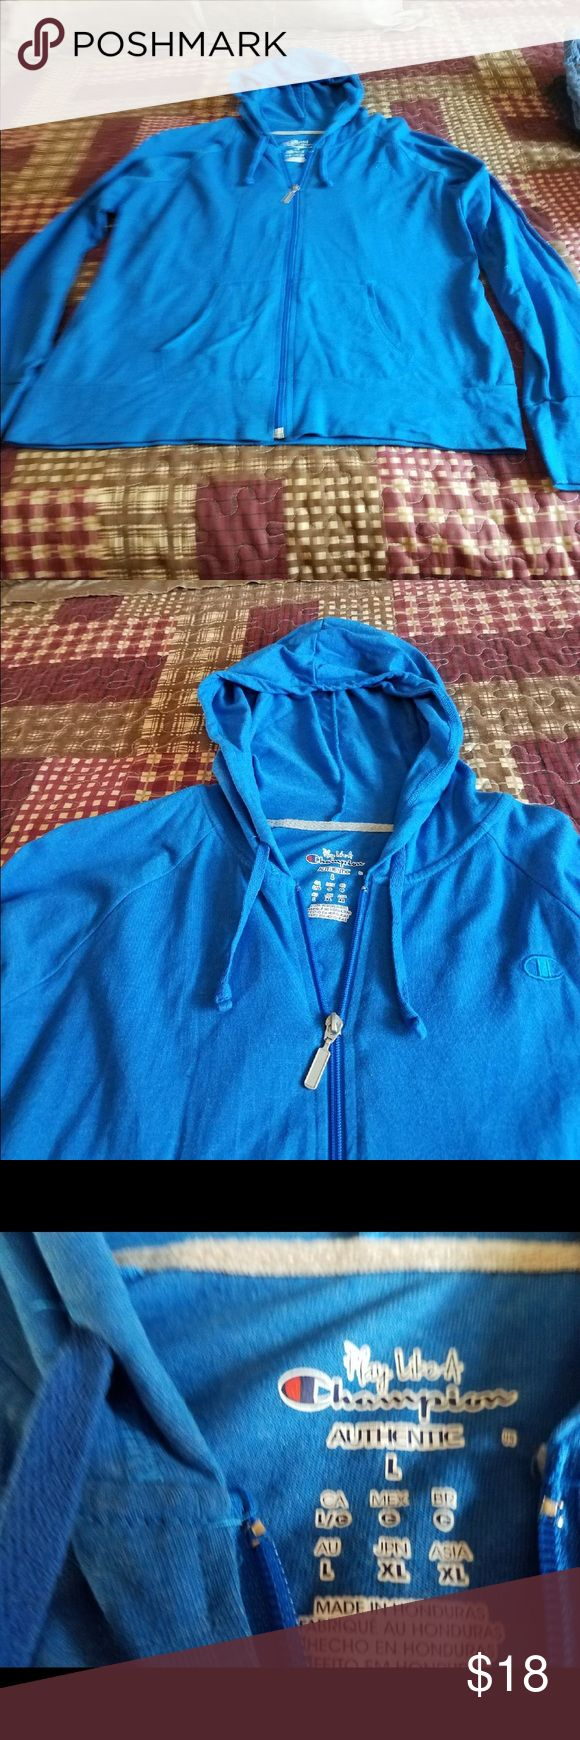 Blue zip up hoodie Blue zip up hoodie with a hood stretchy soft comfortable material it's in great condition Tops Sweatshirts & Hoodies